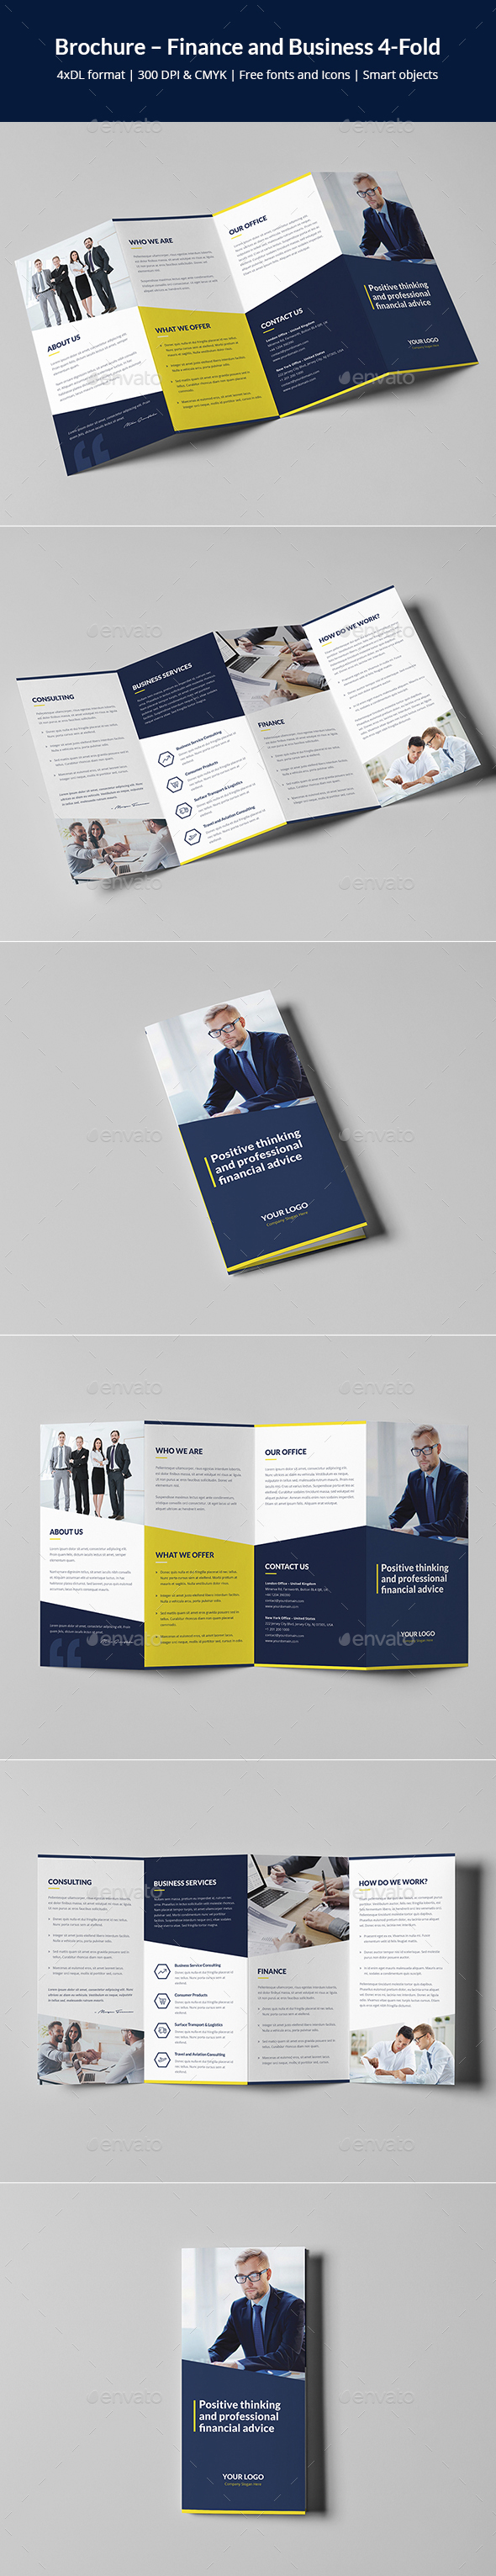 Brochure – Finance and Business 4-Fold - Corporate Brochures